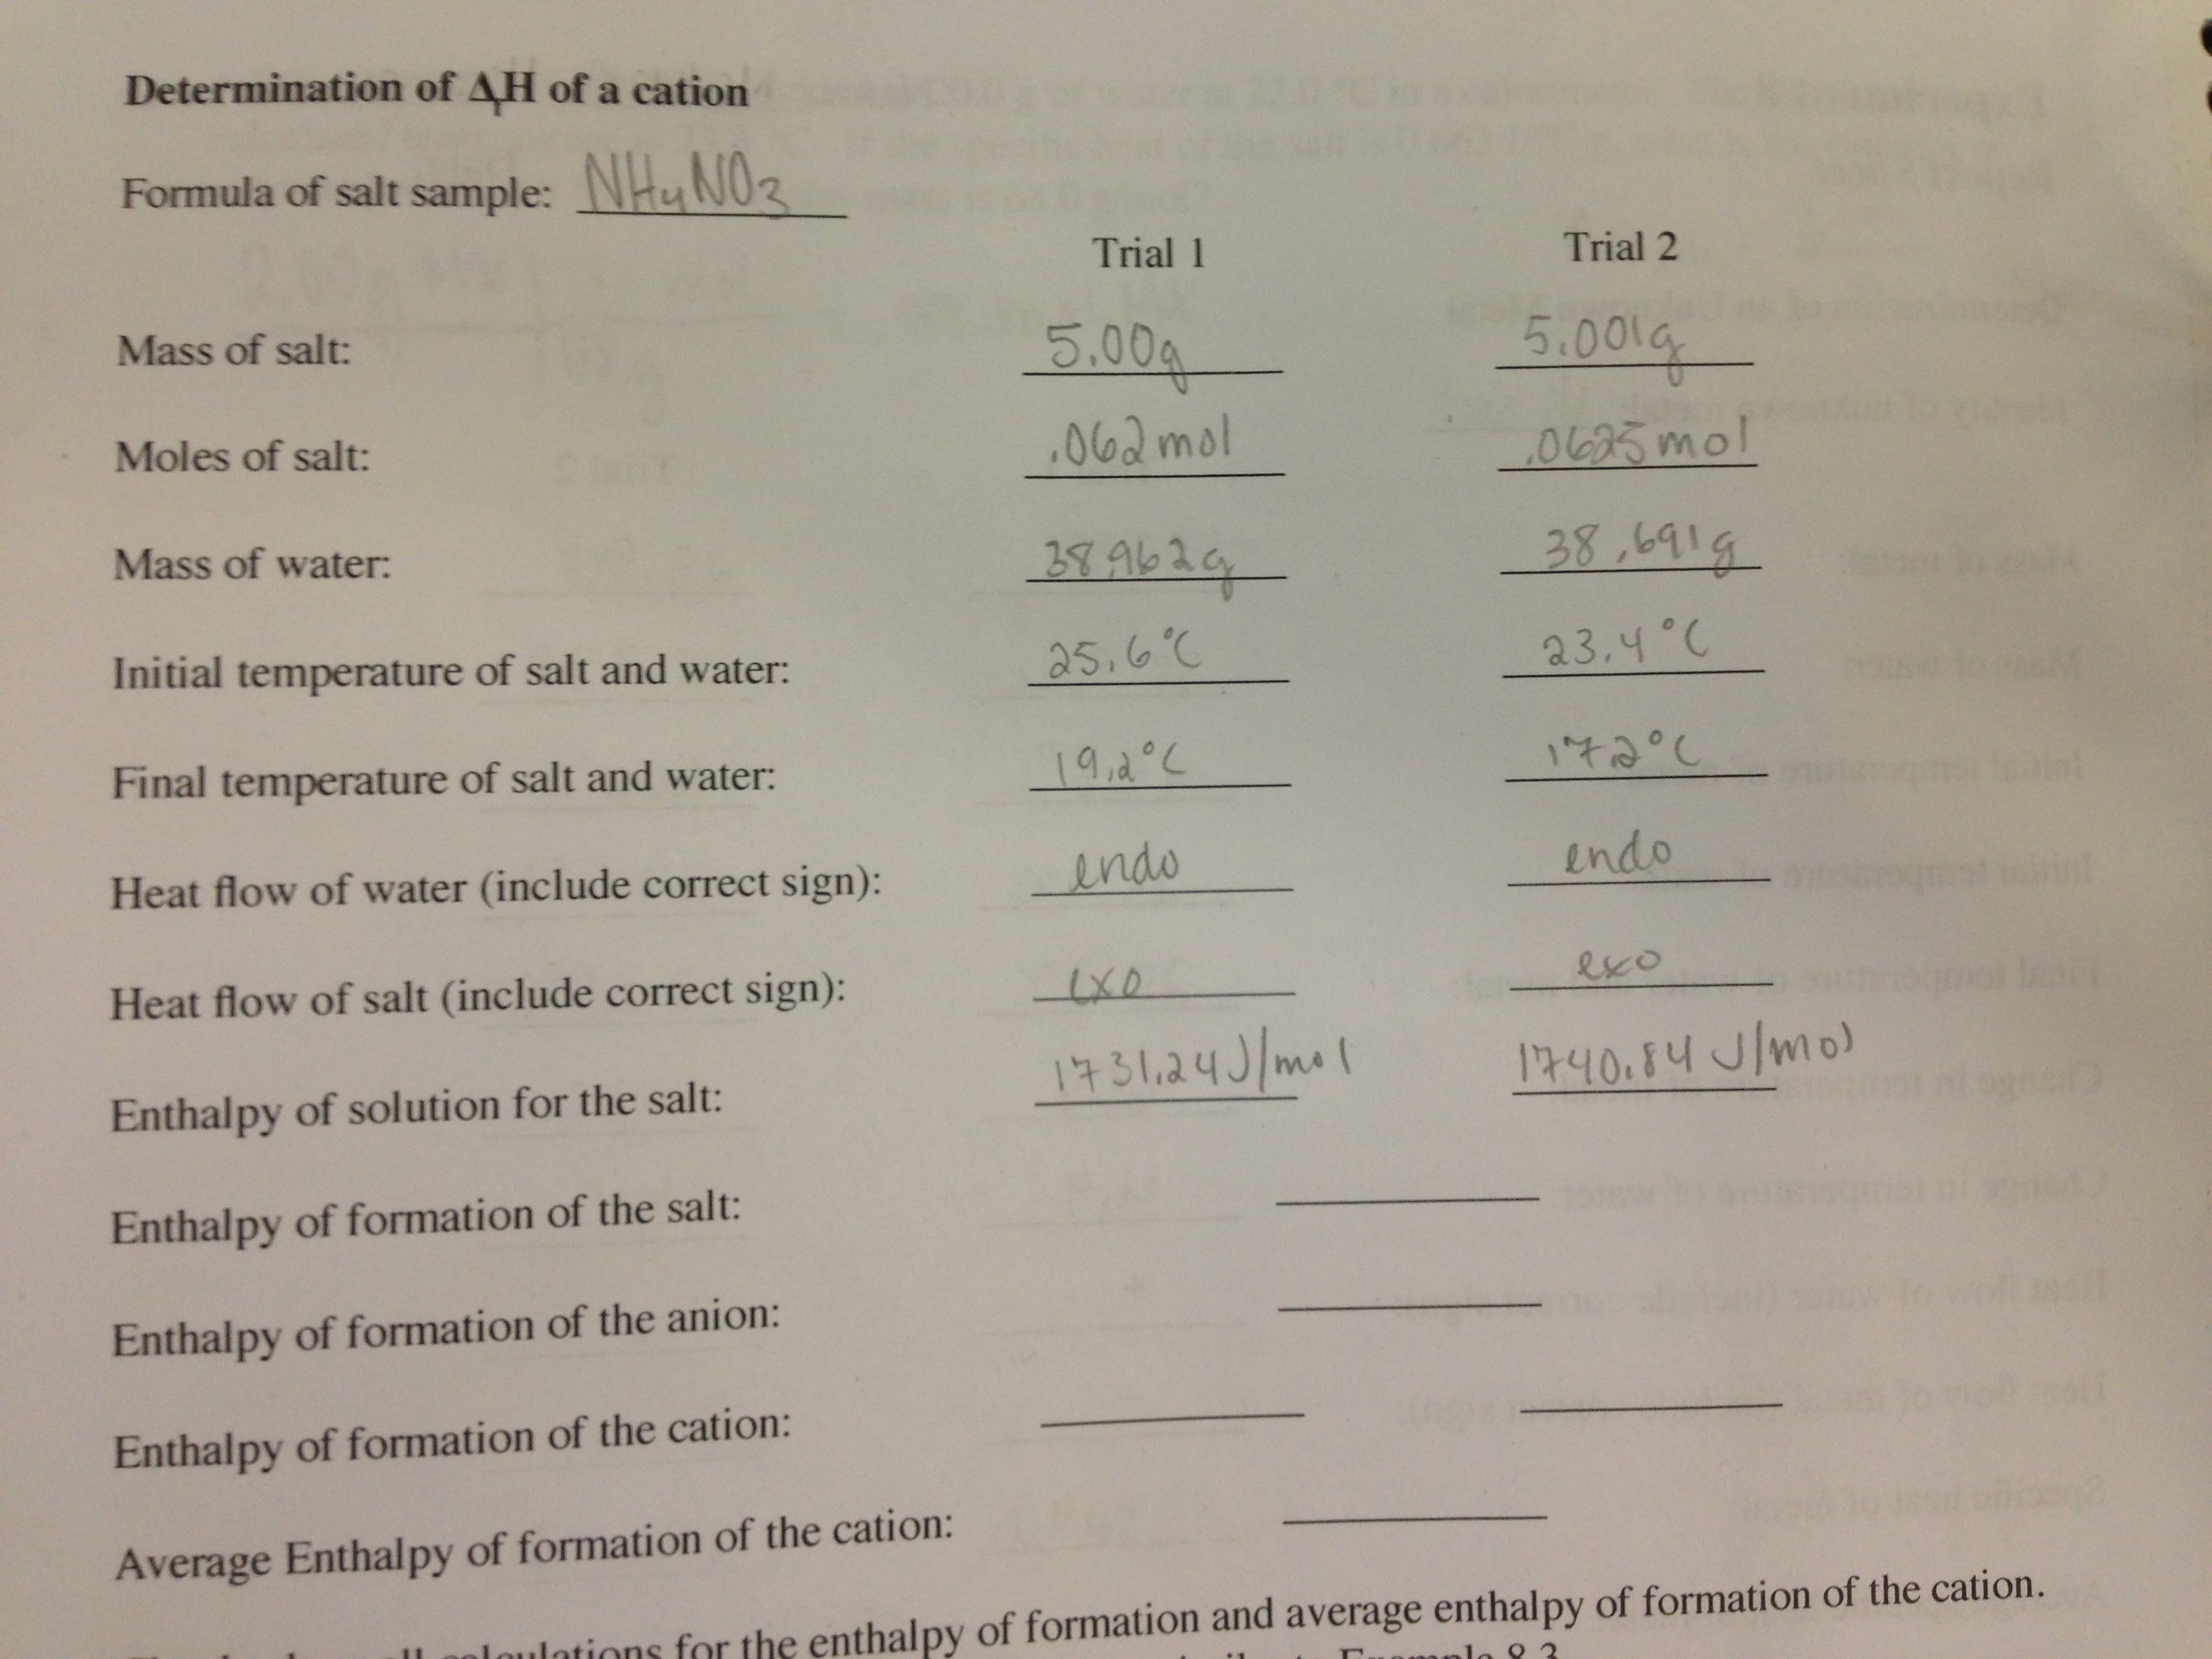 how to find enthalpy when given temperautre